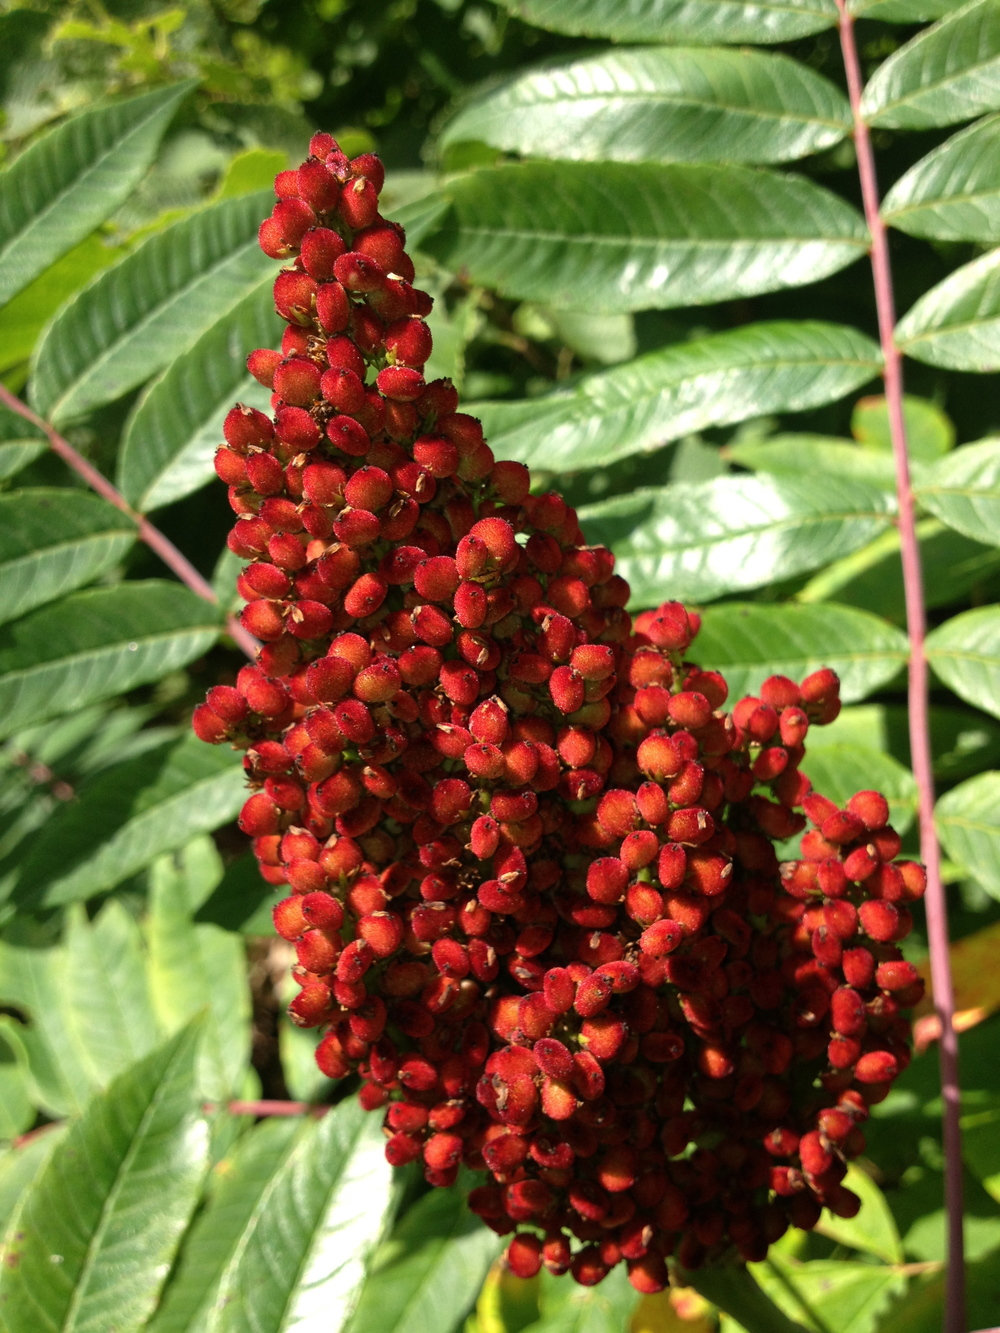 Staghorn Sumac,  Rhus typhina,  Anacardiaceae, part of a rather infamous plant family.